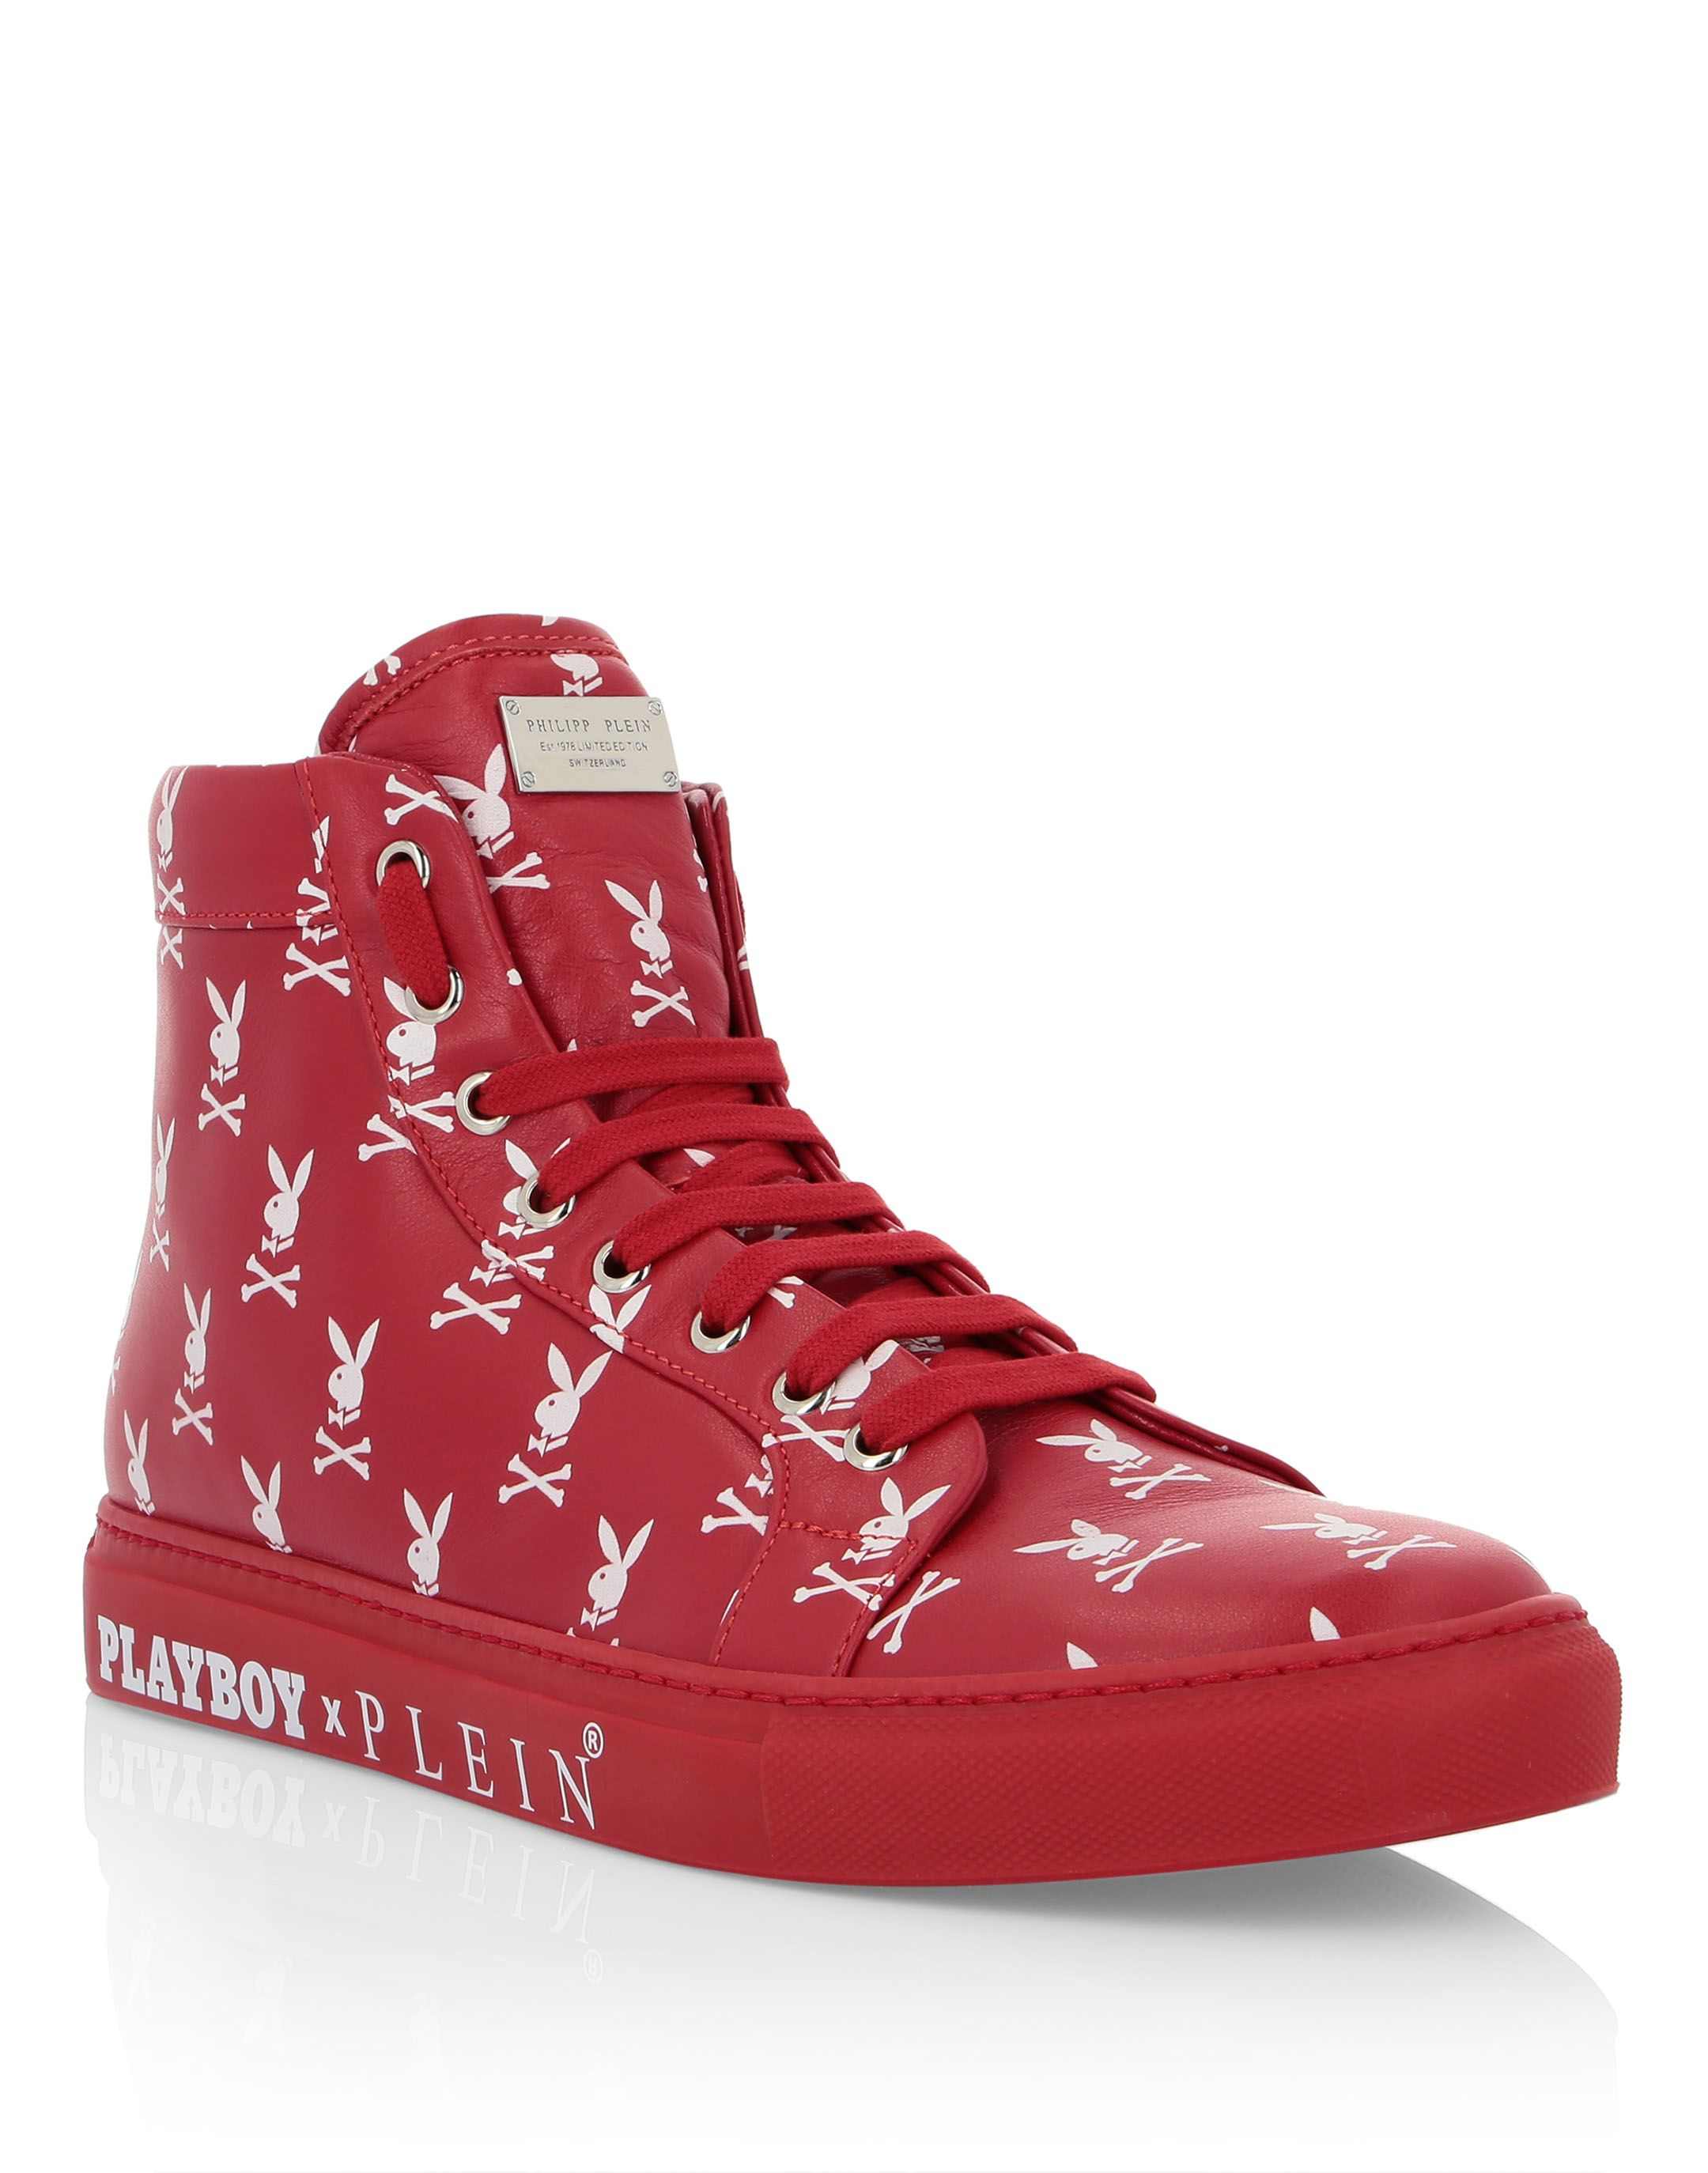 cheap for discount 20bda 193b0 PHILIPP PLEIN HI-TOP SNEAKERS PLAYBOY SKULL.  philippplein  shoes